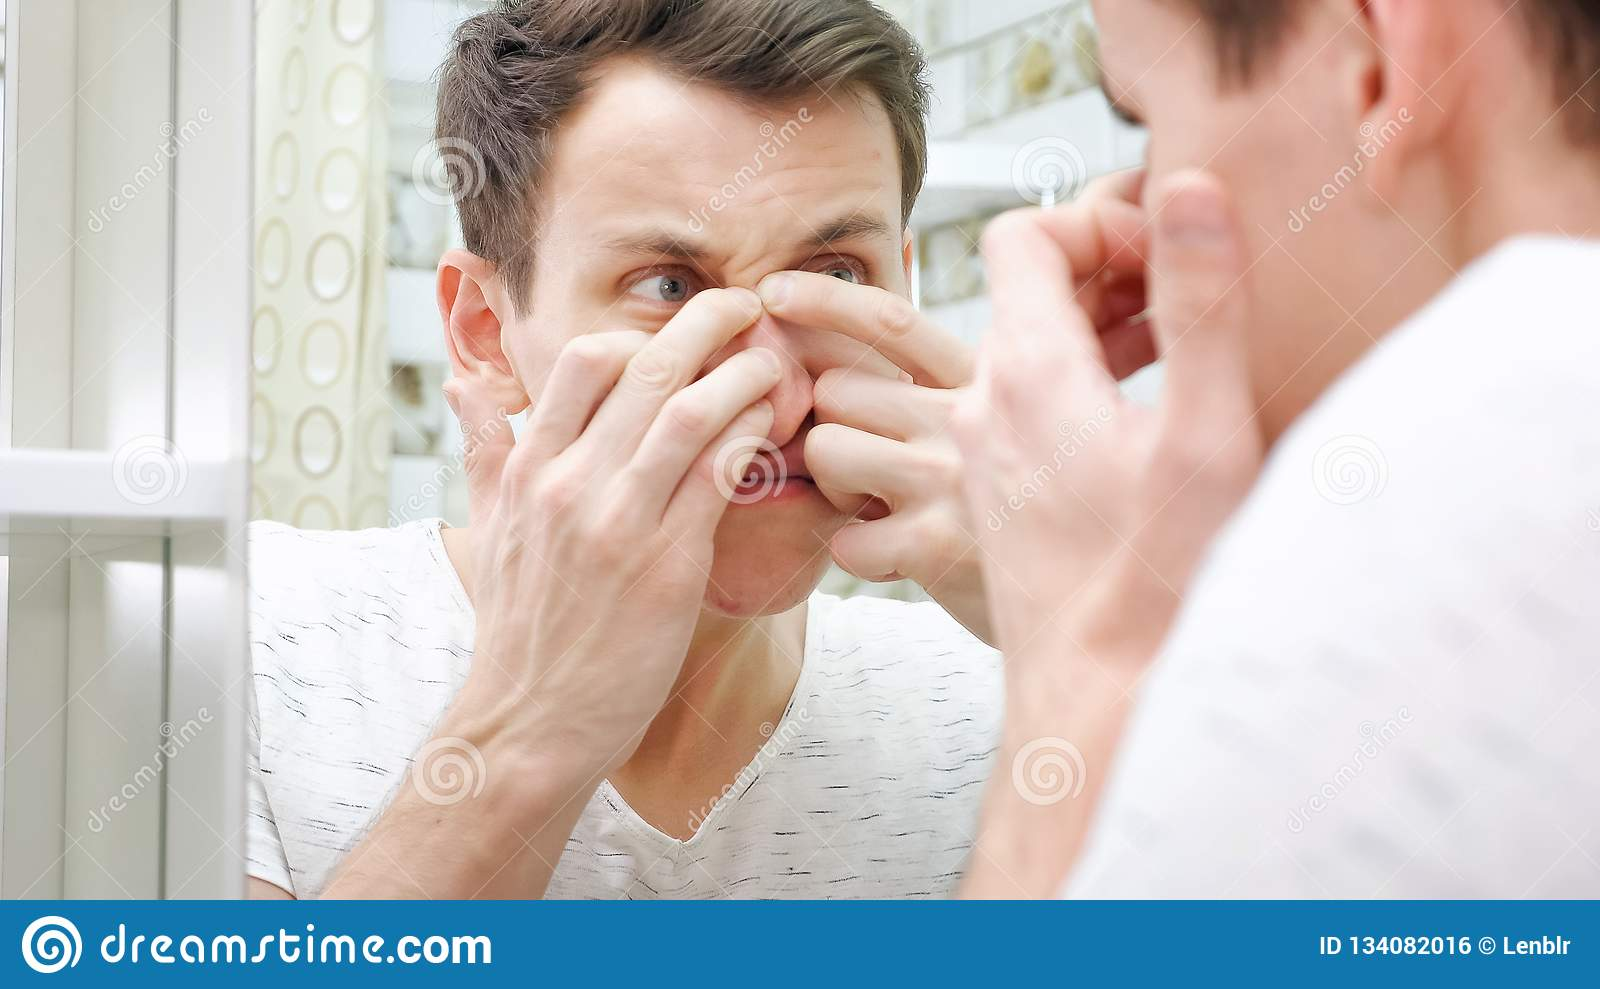 Close up of young man standing close to a mirror in the bathroom and squeezing a pimple on his face